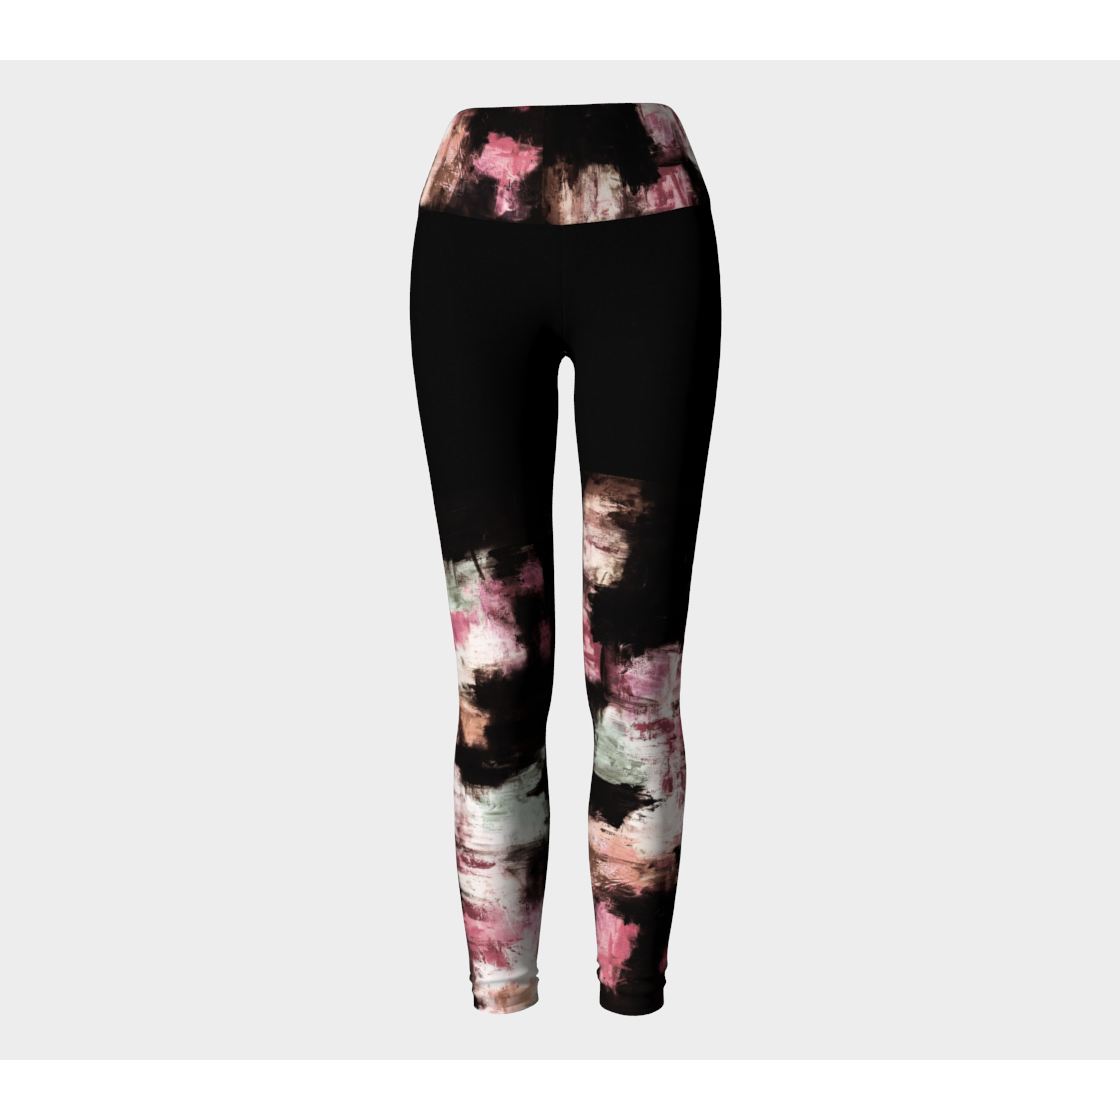 Black Muted Pink Ankle Yoga Leggings